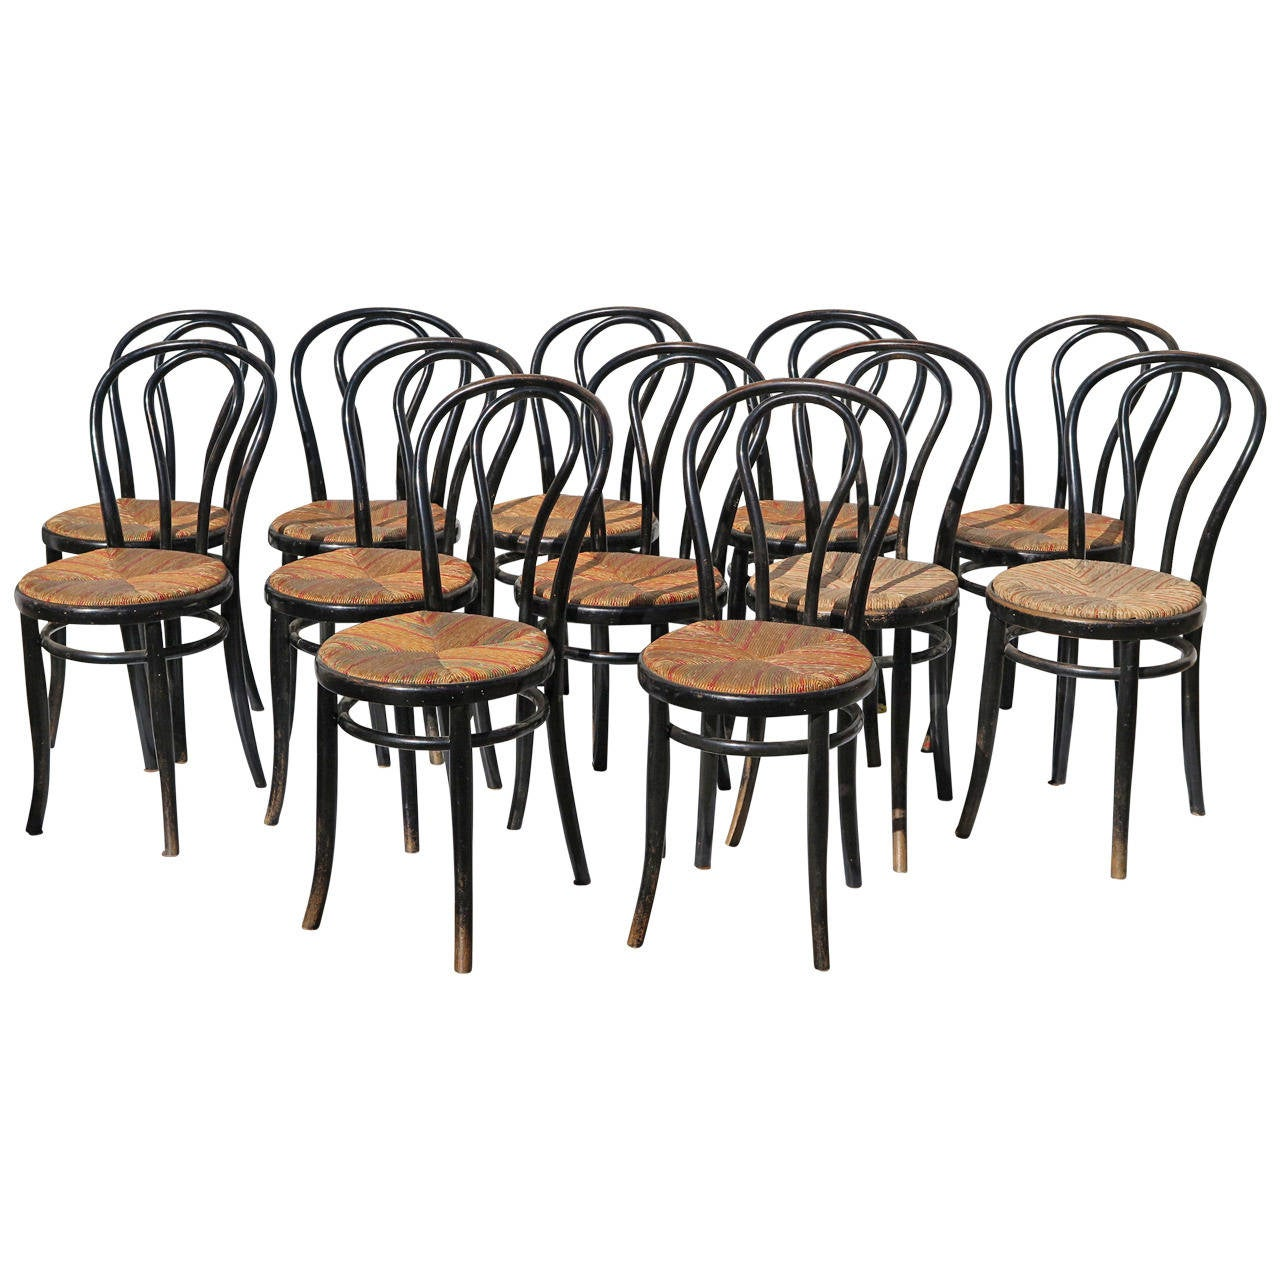 French Bistro Chair French Bistro Chairs Six Available For Sale At 1stdibs